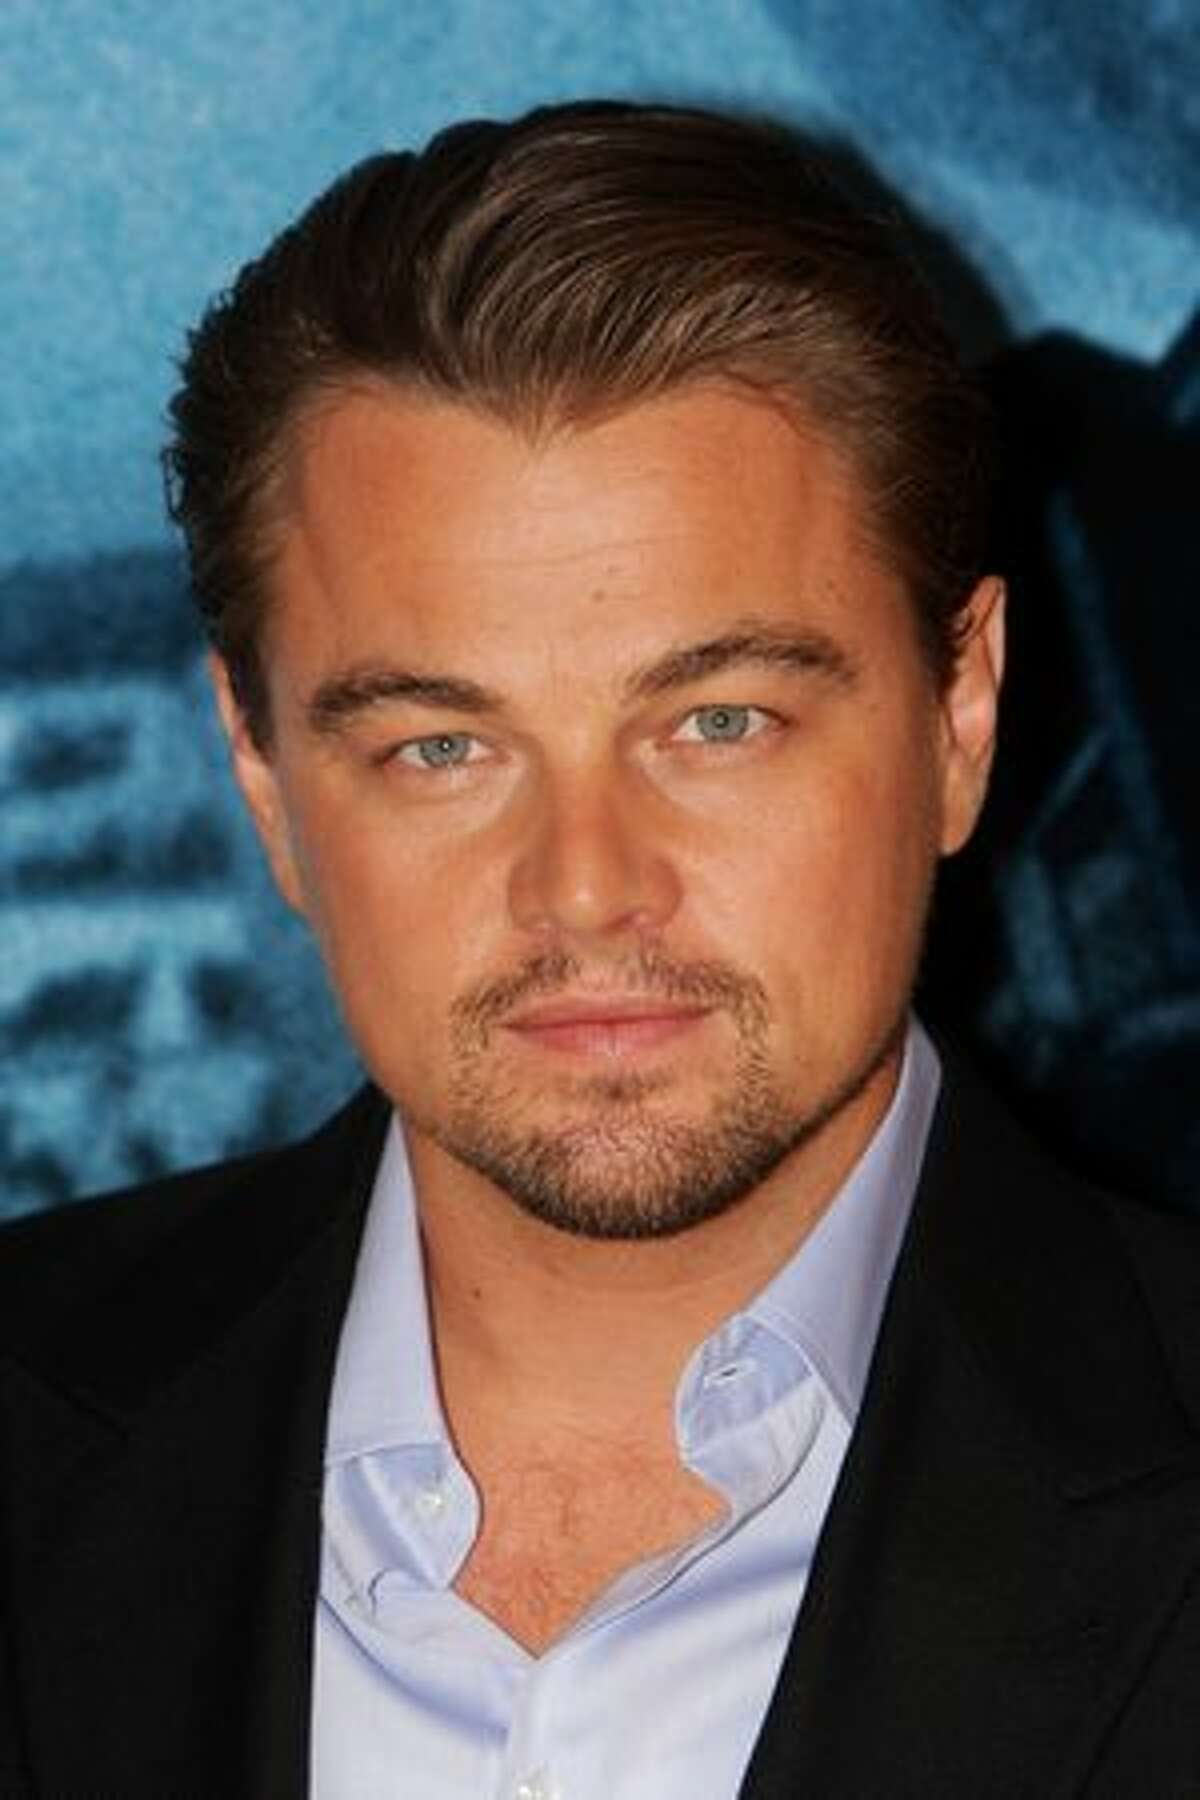 Leonardo DiCaprio attends a photocall to promote the upcoming release of 'Inception' at The Dorchester Hotel.